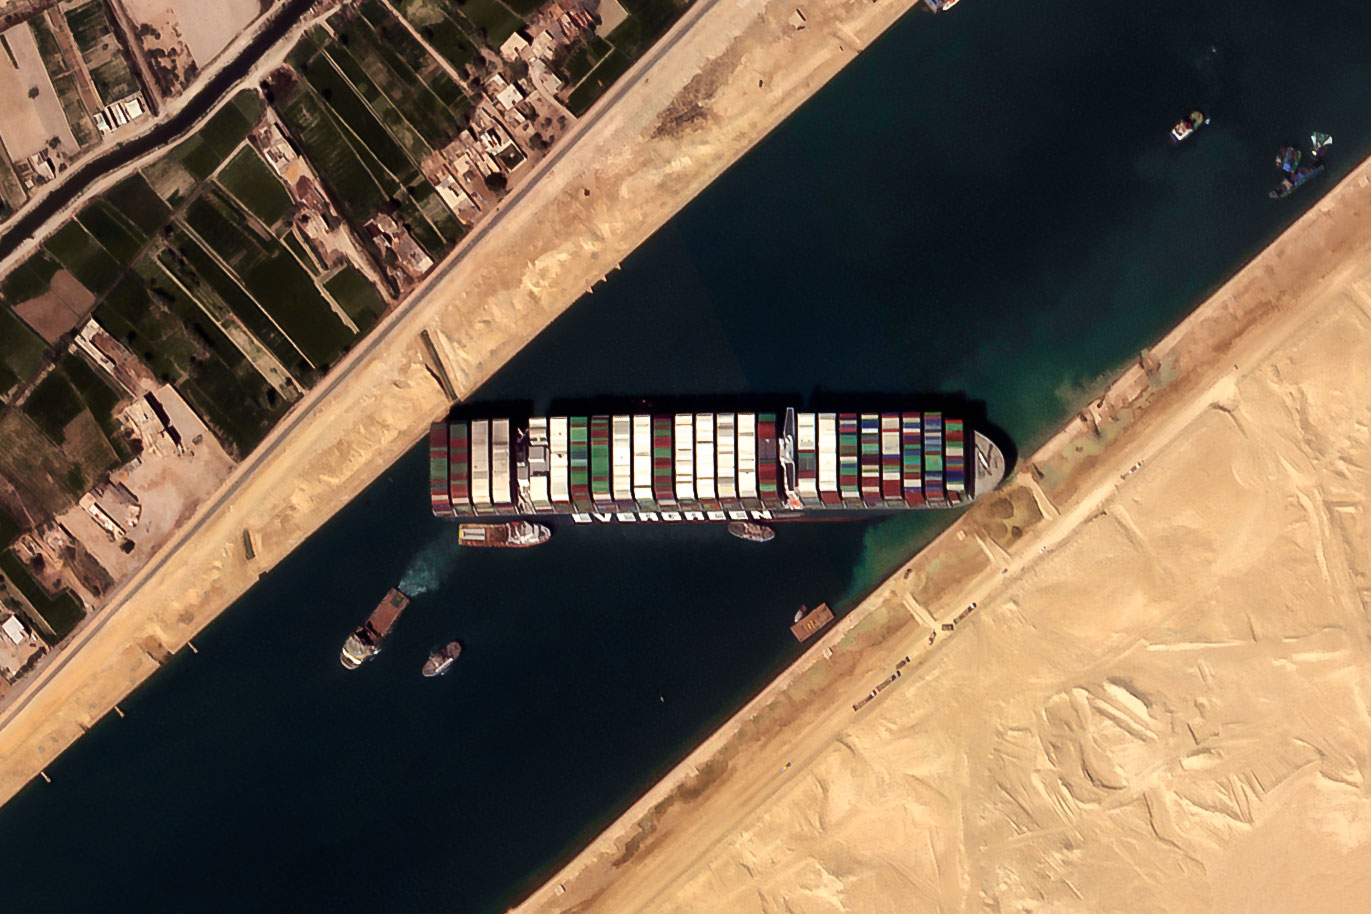 HANDOUT - 26 March 2021, Egypt, Suez: A satellite image provided by the European Space Imaging on 26 March 2021 shows the 'Ever given', a container ship operated by the Evergreen Marine Corporation, is currently stuck in the Suez Canal. The state-run Suez Canal Authority (SCA) announced that nearly 17,000 cubic meters of sand have been dredged around the ship after navigation through the Suez Canal has been temporarily suspended until the full refloating of the Panamanian massive cargo vessel which ran aground on Tuesday in the southern end of the Suez Canal and blocked the traffic in both directions. The ship turned sideways in the Canal, while on the route from China to Rotterdam, due to reduced visibility that resulted from a dust storm hitting the area, according to SCA. Photo: -/European Space Imaging/dpa - ATTENTION: editorial use only and only if the credit mentioned above is referenced in full